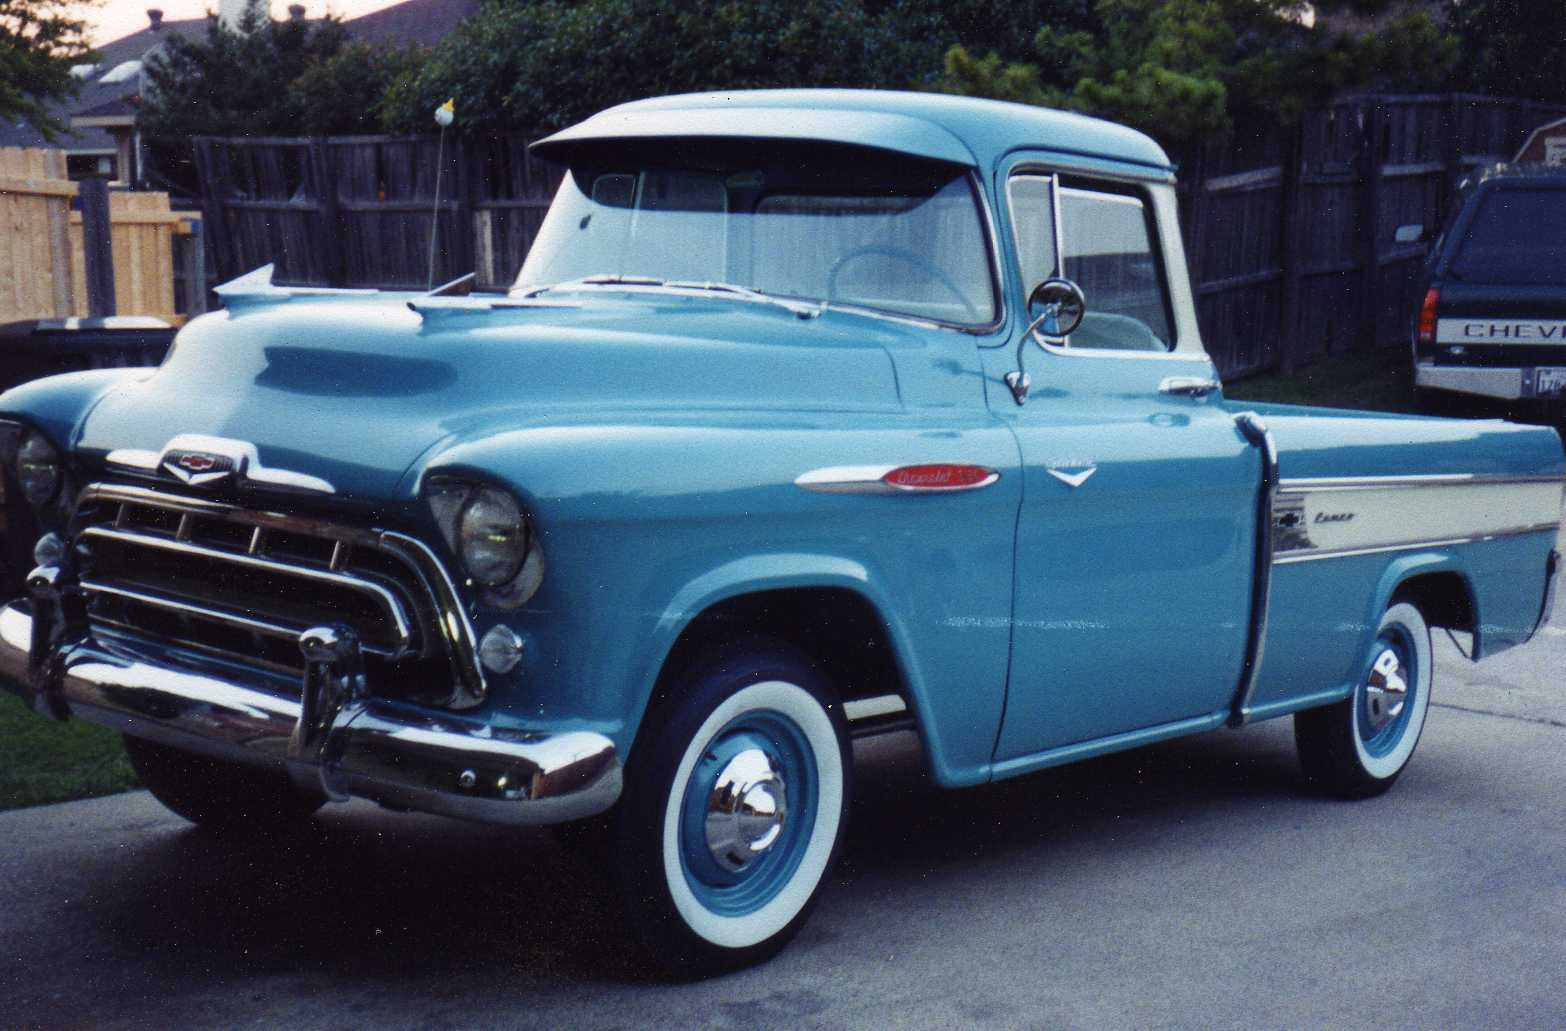 1955 chevy truck car clubs autos post - Decided To Put Back As Original As Possible And It Has One It S Class At Every Show Entered Bed Was Rough But No After Market Beds Back Then So Lots Of